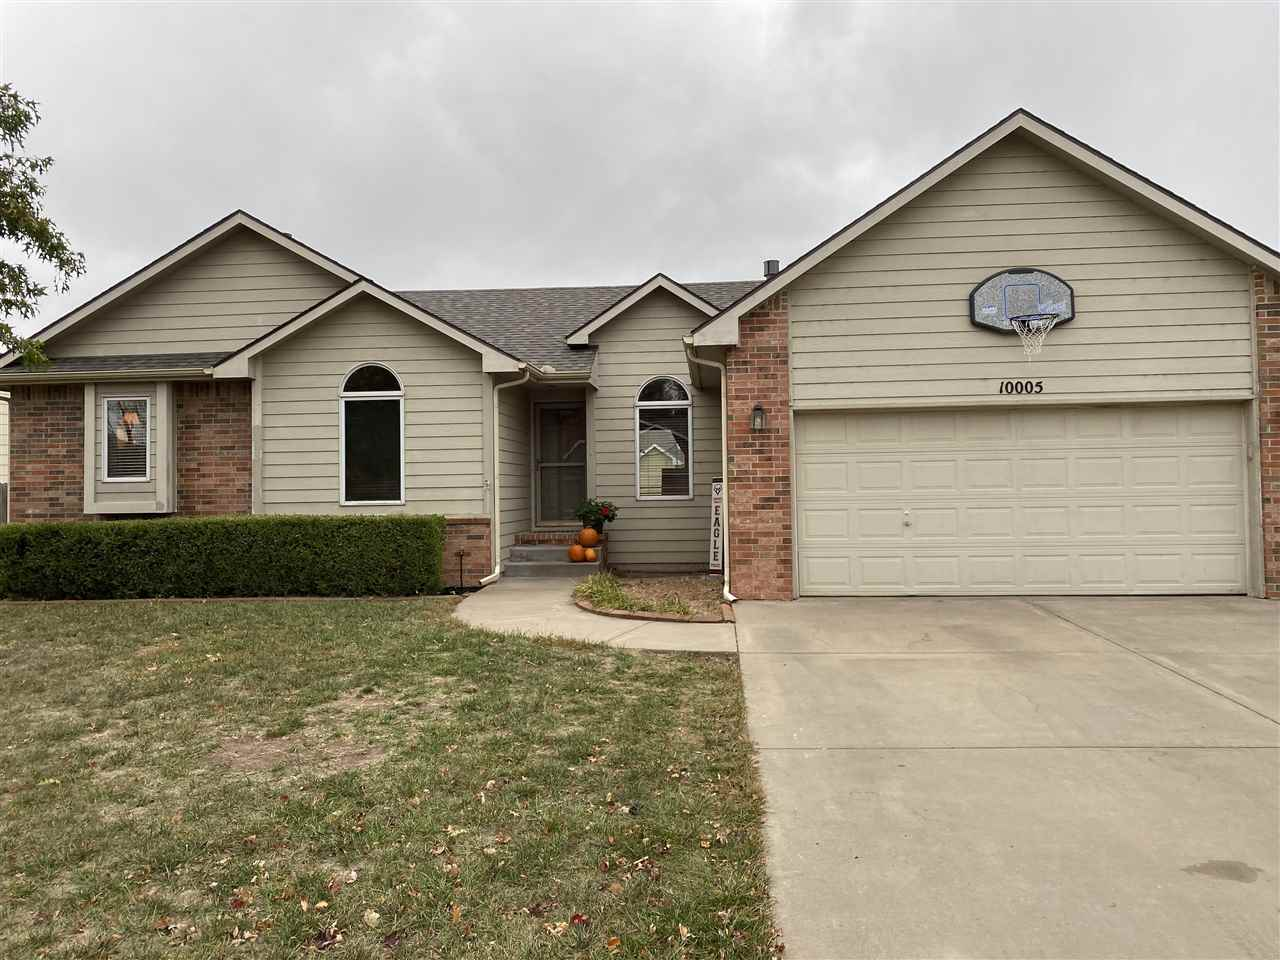 Welcome to your new home! This beautiful, well-maintained home in the Maize School District has everything you need: 3 bedrooms on the main level with one large bedroom in the basement. An oversized master bedroom suite with a large walk-in closet and bathroom with whirlpool tub. The kitchen has plenty of storage, as well as main floor laundry and pantry! The basement has a gorgeous finished bathroom, large entertainment room and a craft/storage room. BRAND NEW ROOF INSTALLED OCT 2020! This home is located in a great neighborhood with no special taxes and close to New Market Square for easy access to restaurants and shopping!